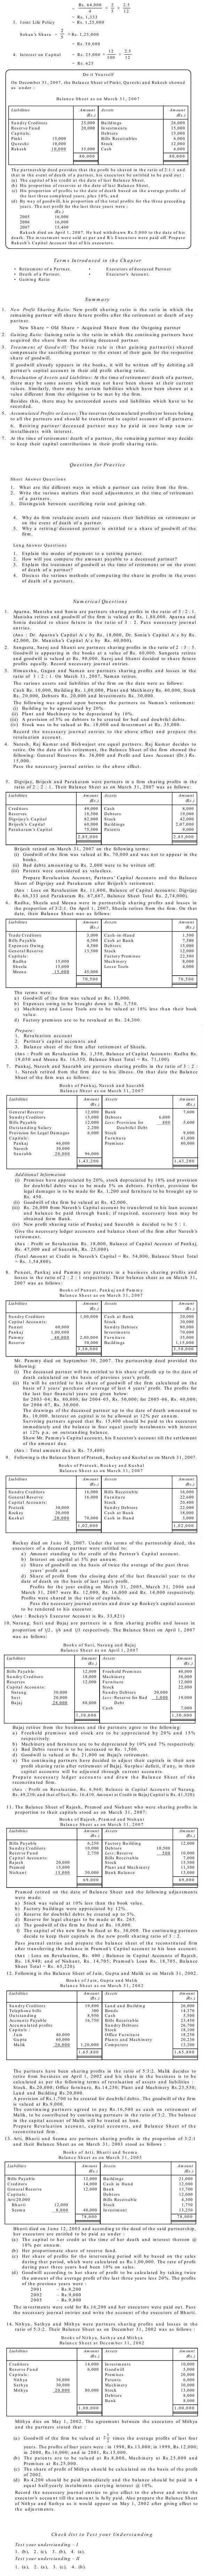 NCERT Class XII Accountancy I Chapter 4 - Reconstitution of Partnership Firm - Retirement/Death of a Partner